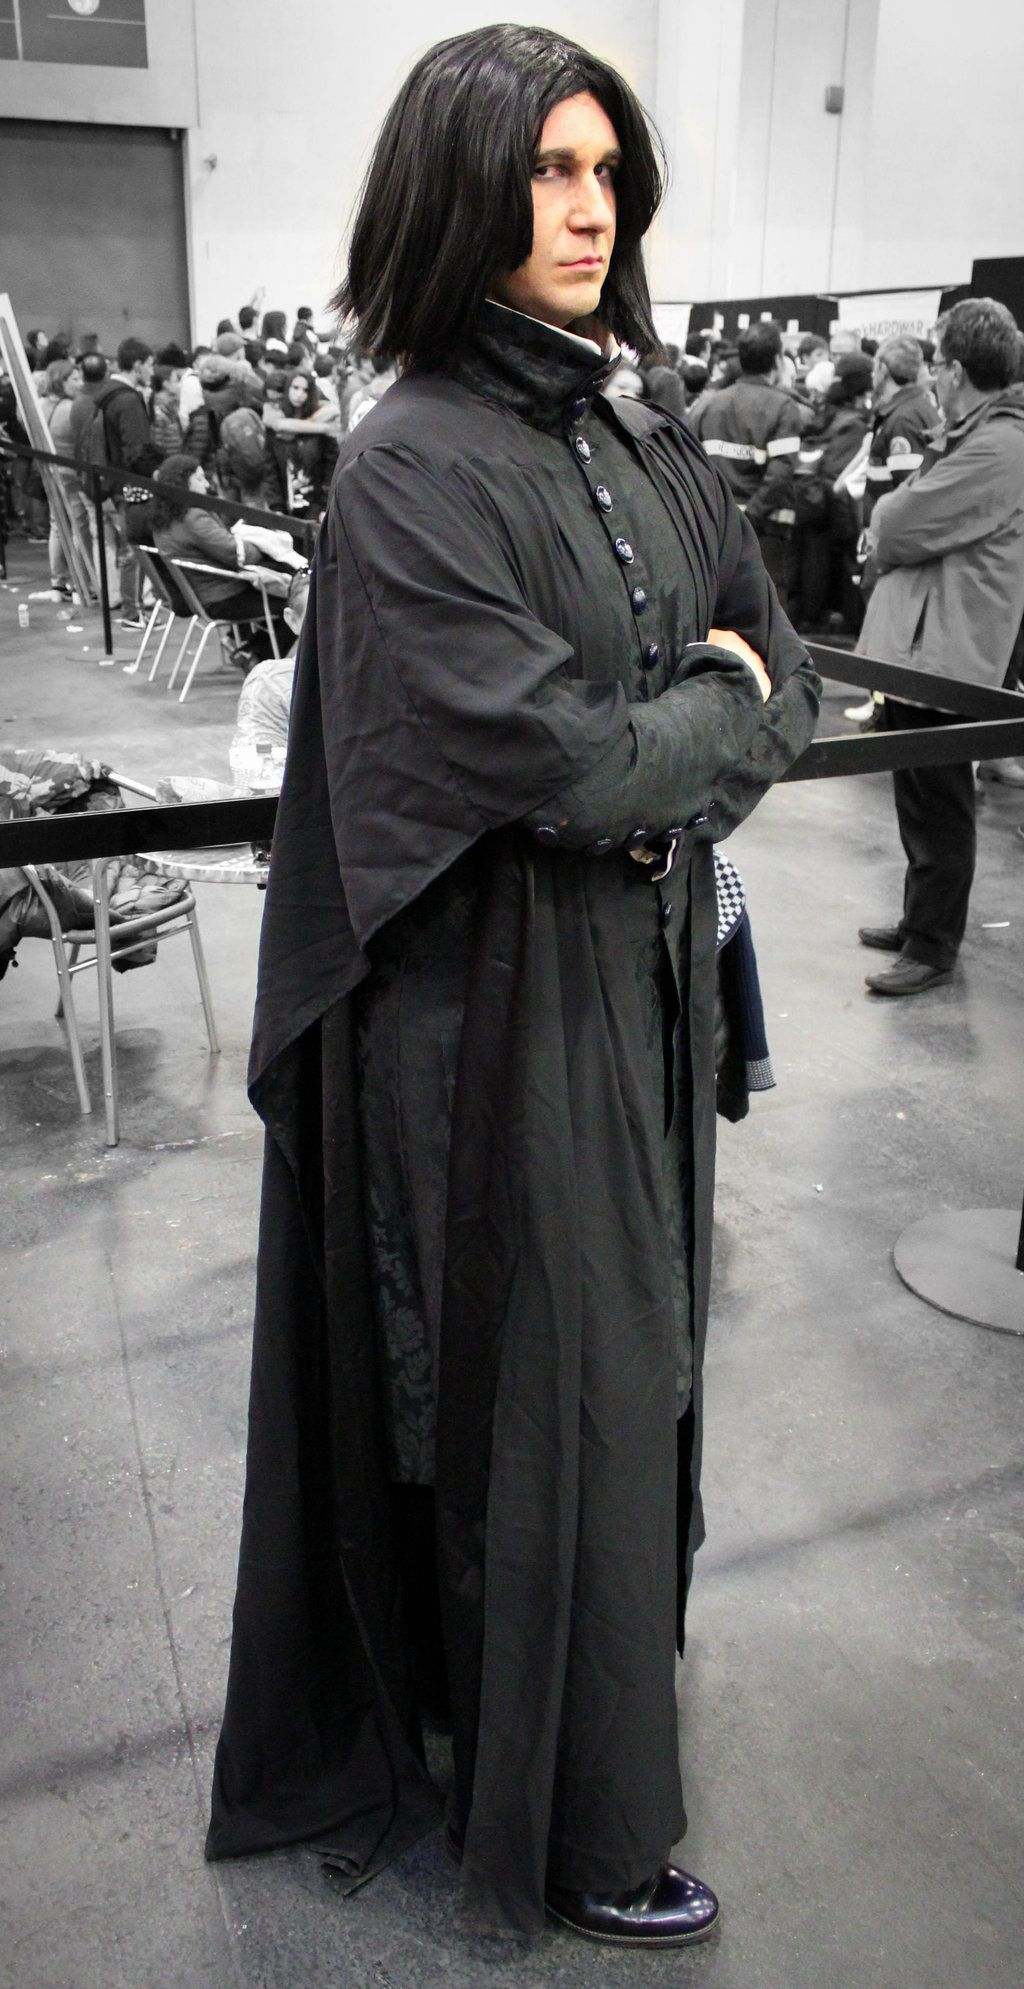 Severus Snape - Harry Potter Photo by NDC880117.deviantart.com